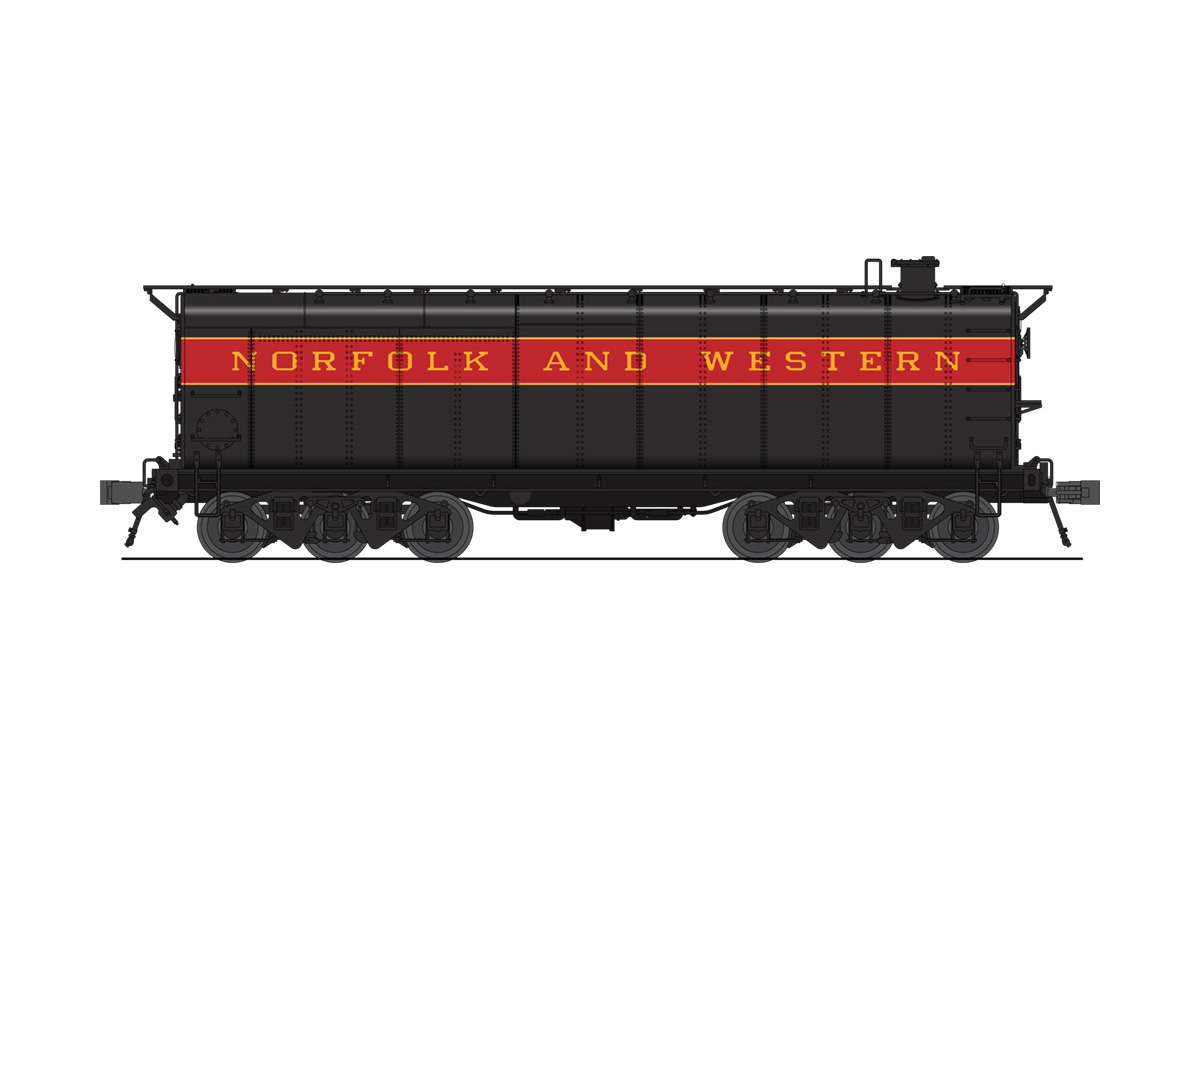 broadway_limited_aux_tender_nw_excursion_220166